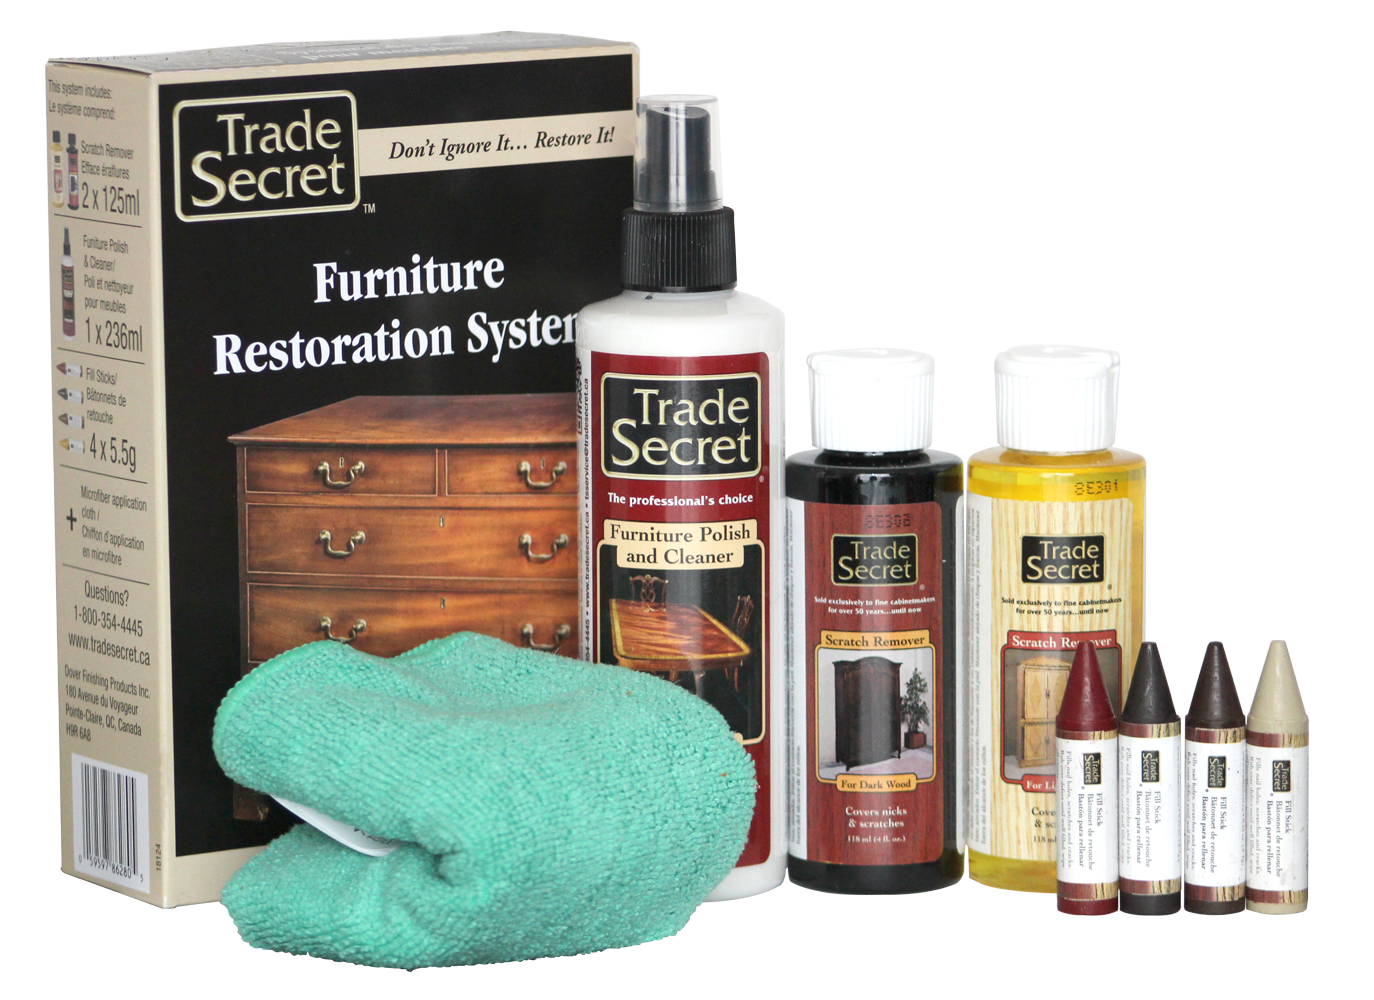 Furniture Restoration System Trade Secret